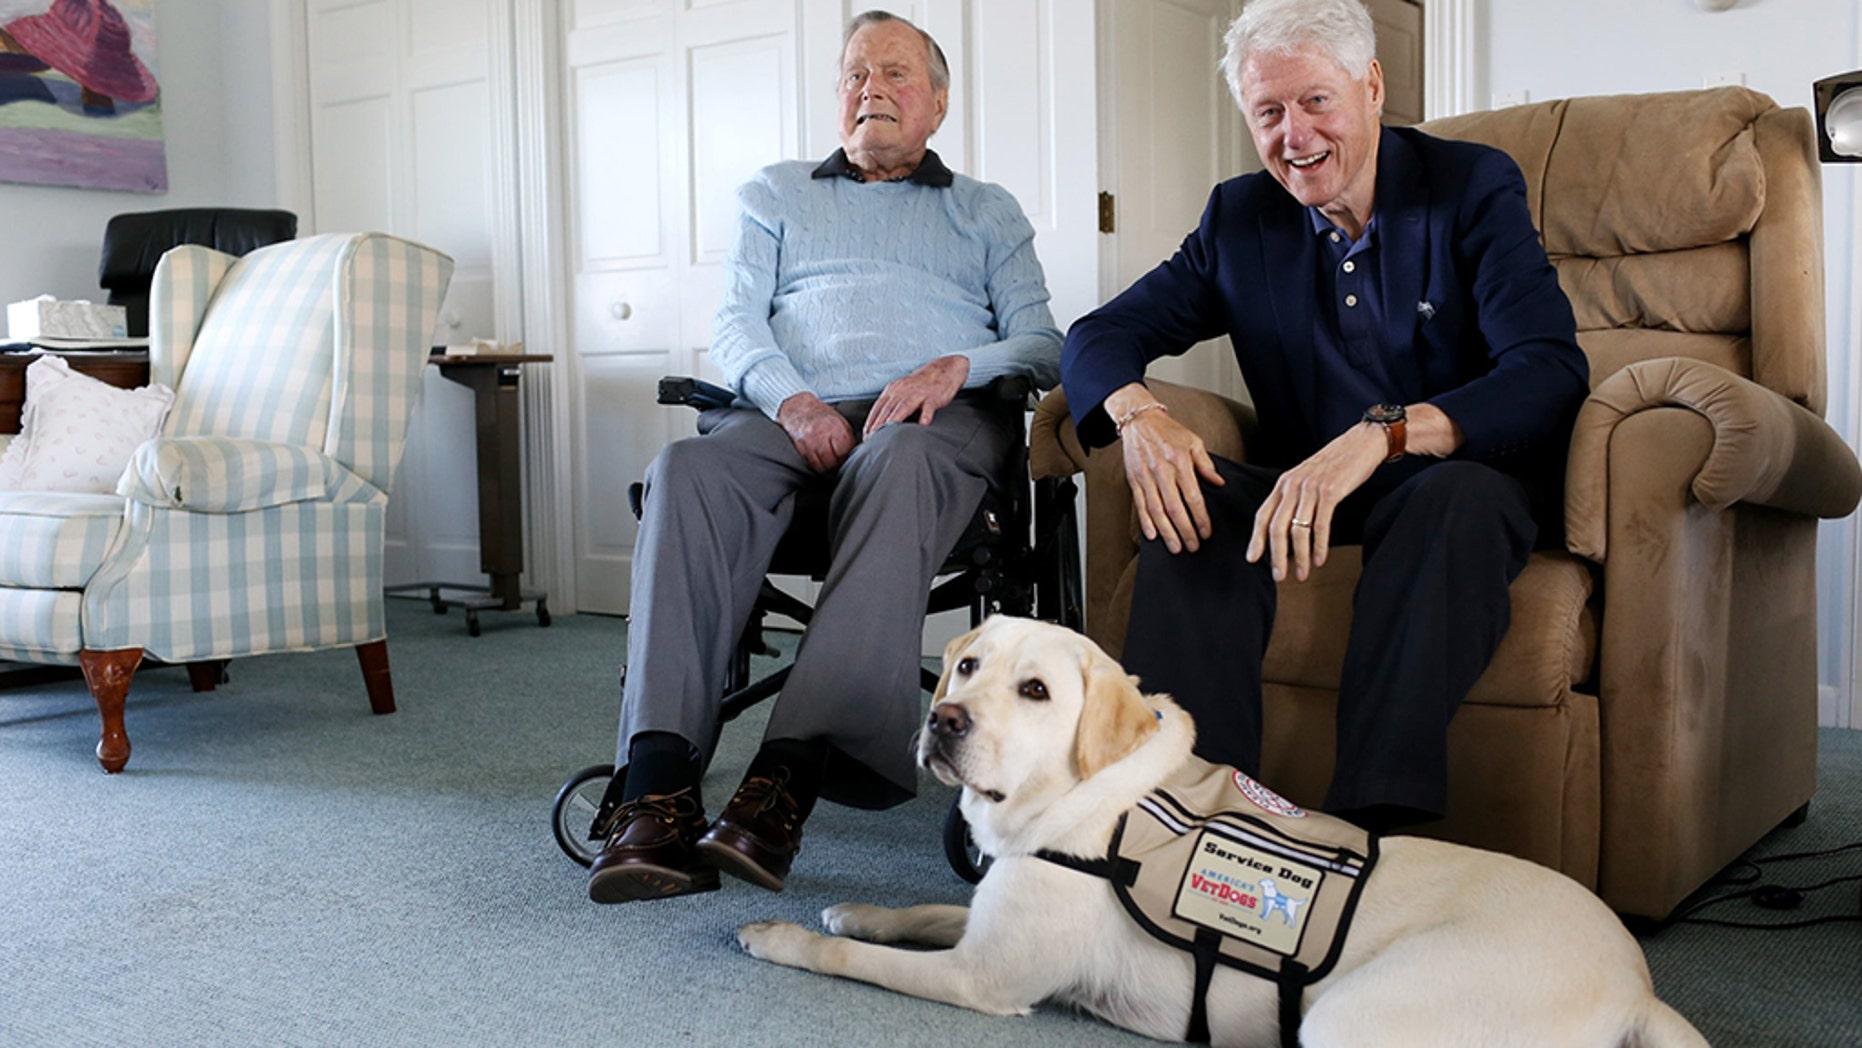 A photo sent via Twitter shows Sully lounging at the feet of Former President George H.W. Bush and former President Bill Clinton, who had been visiting on Monday.